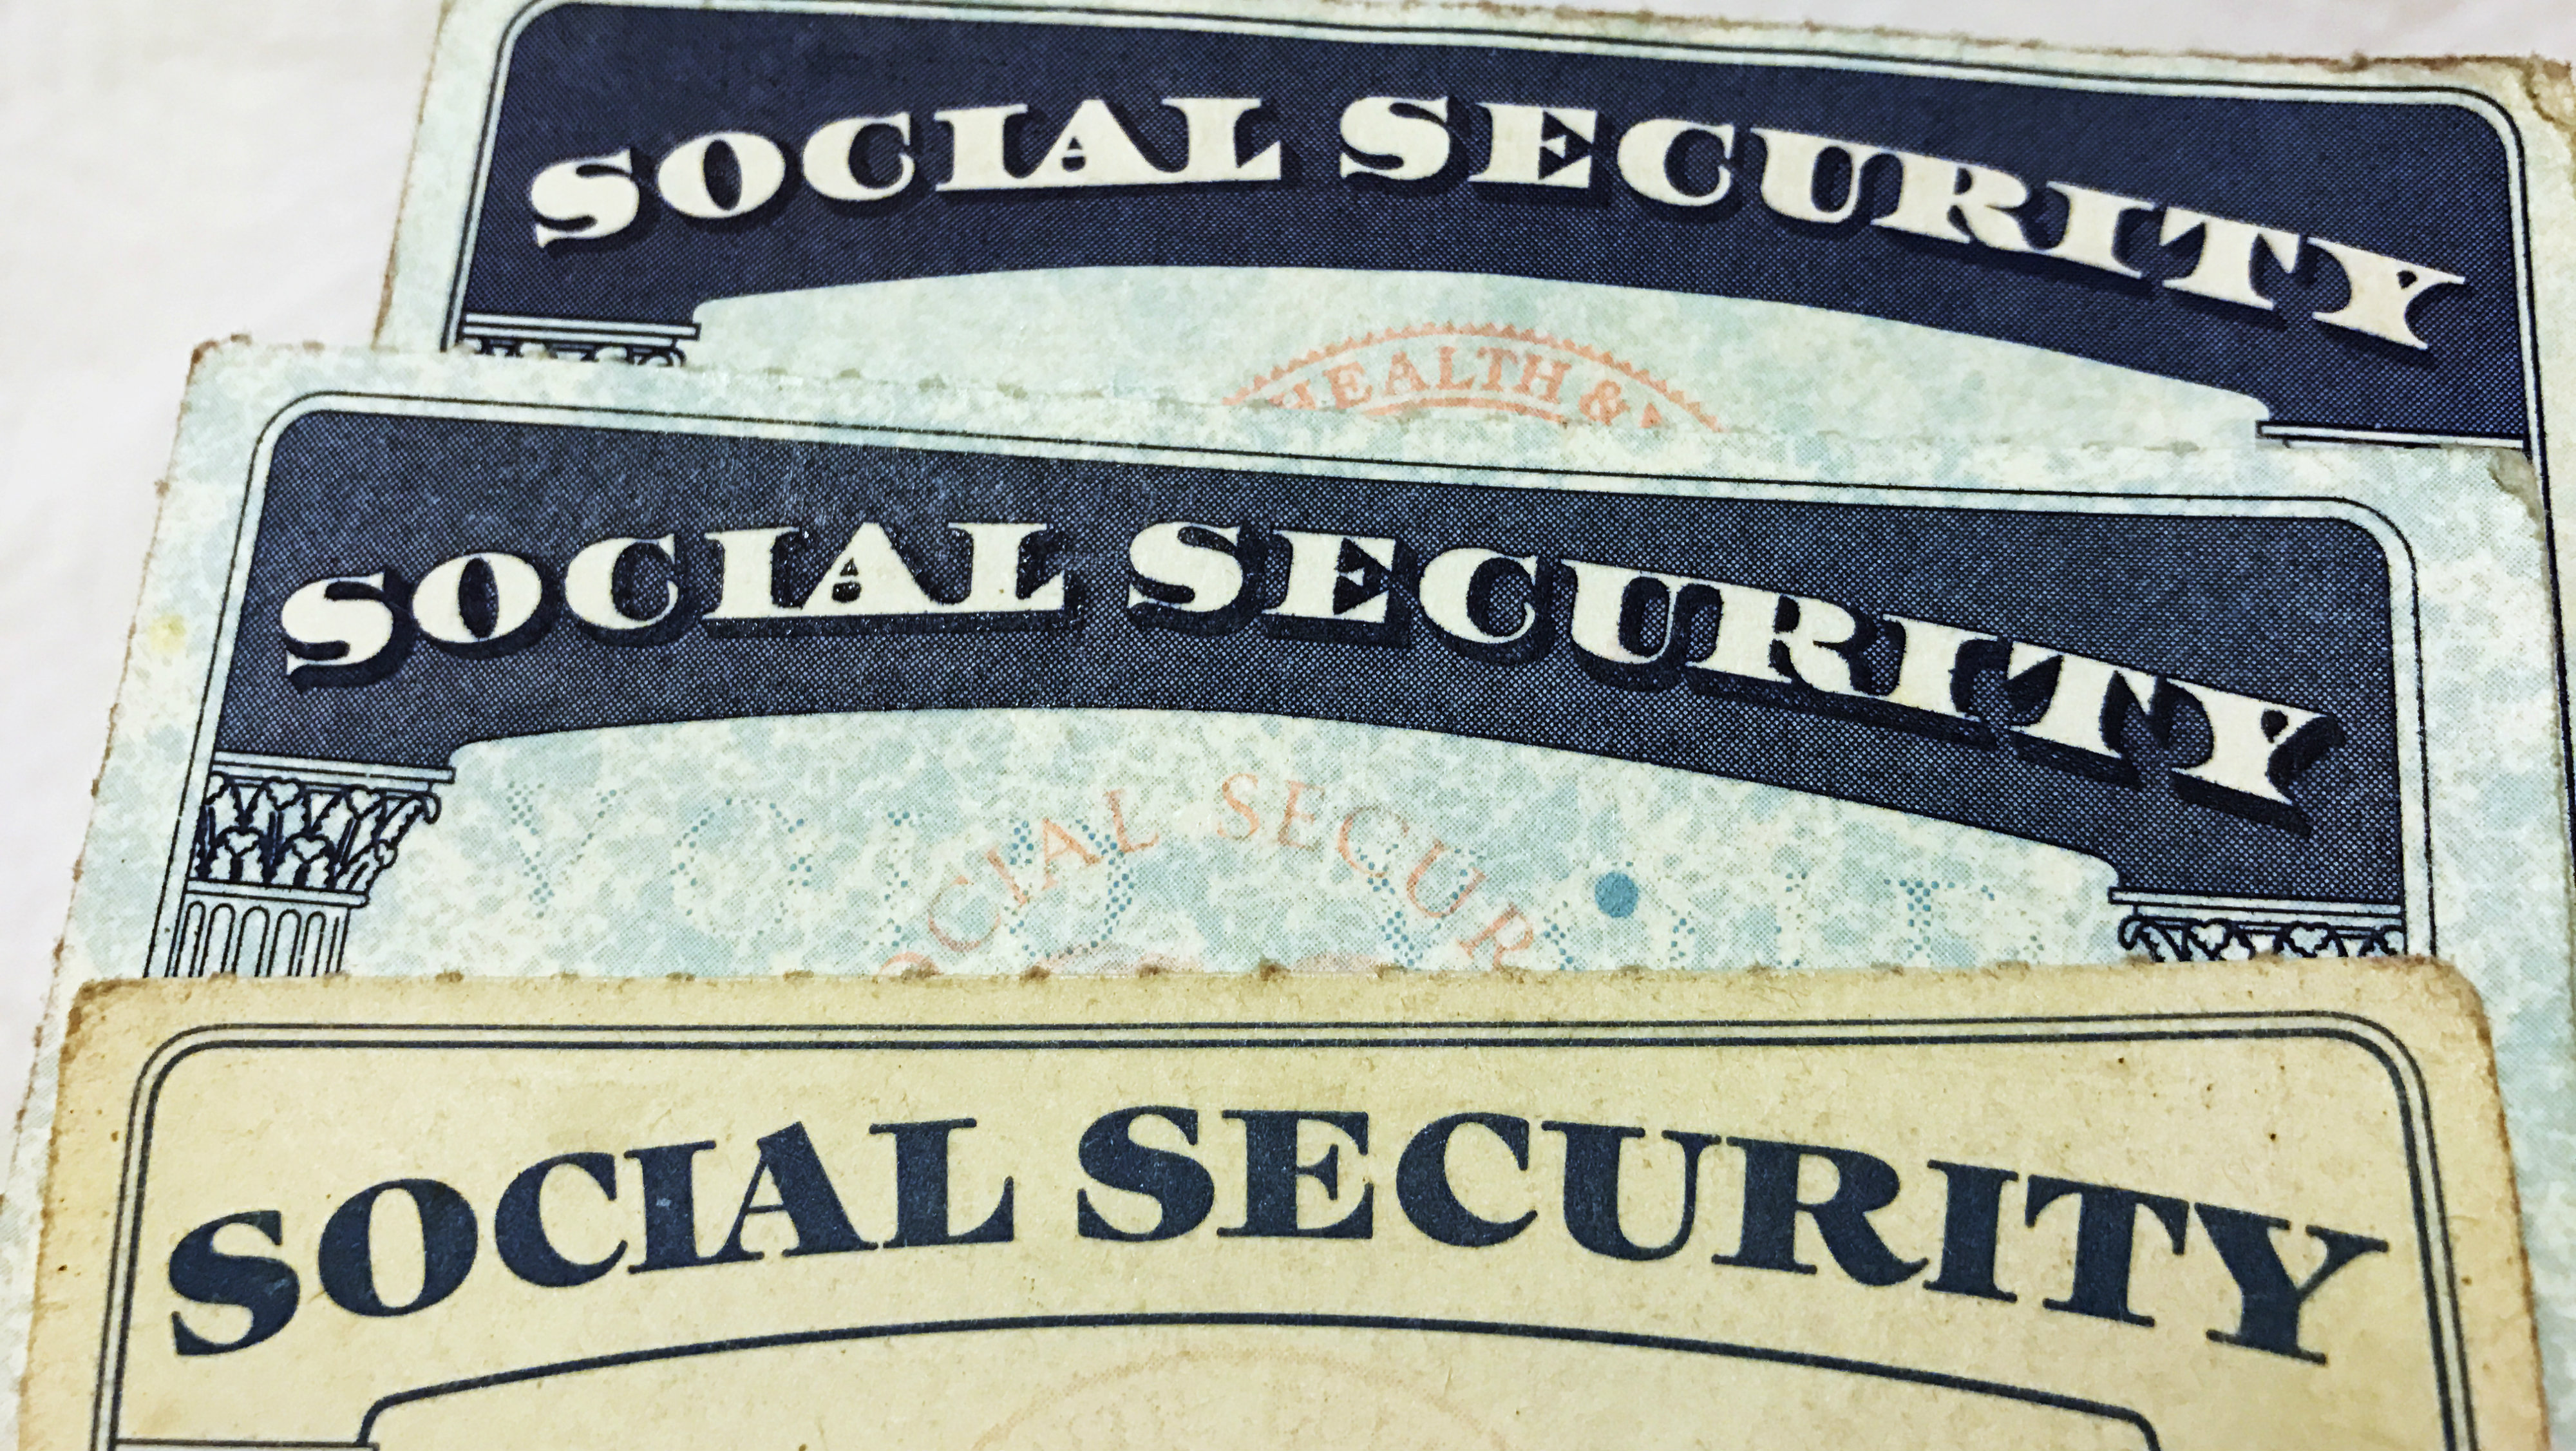 amendments to the social security act of 1935